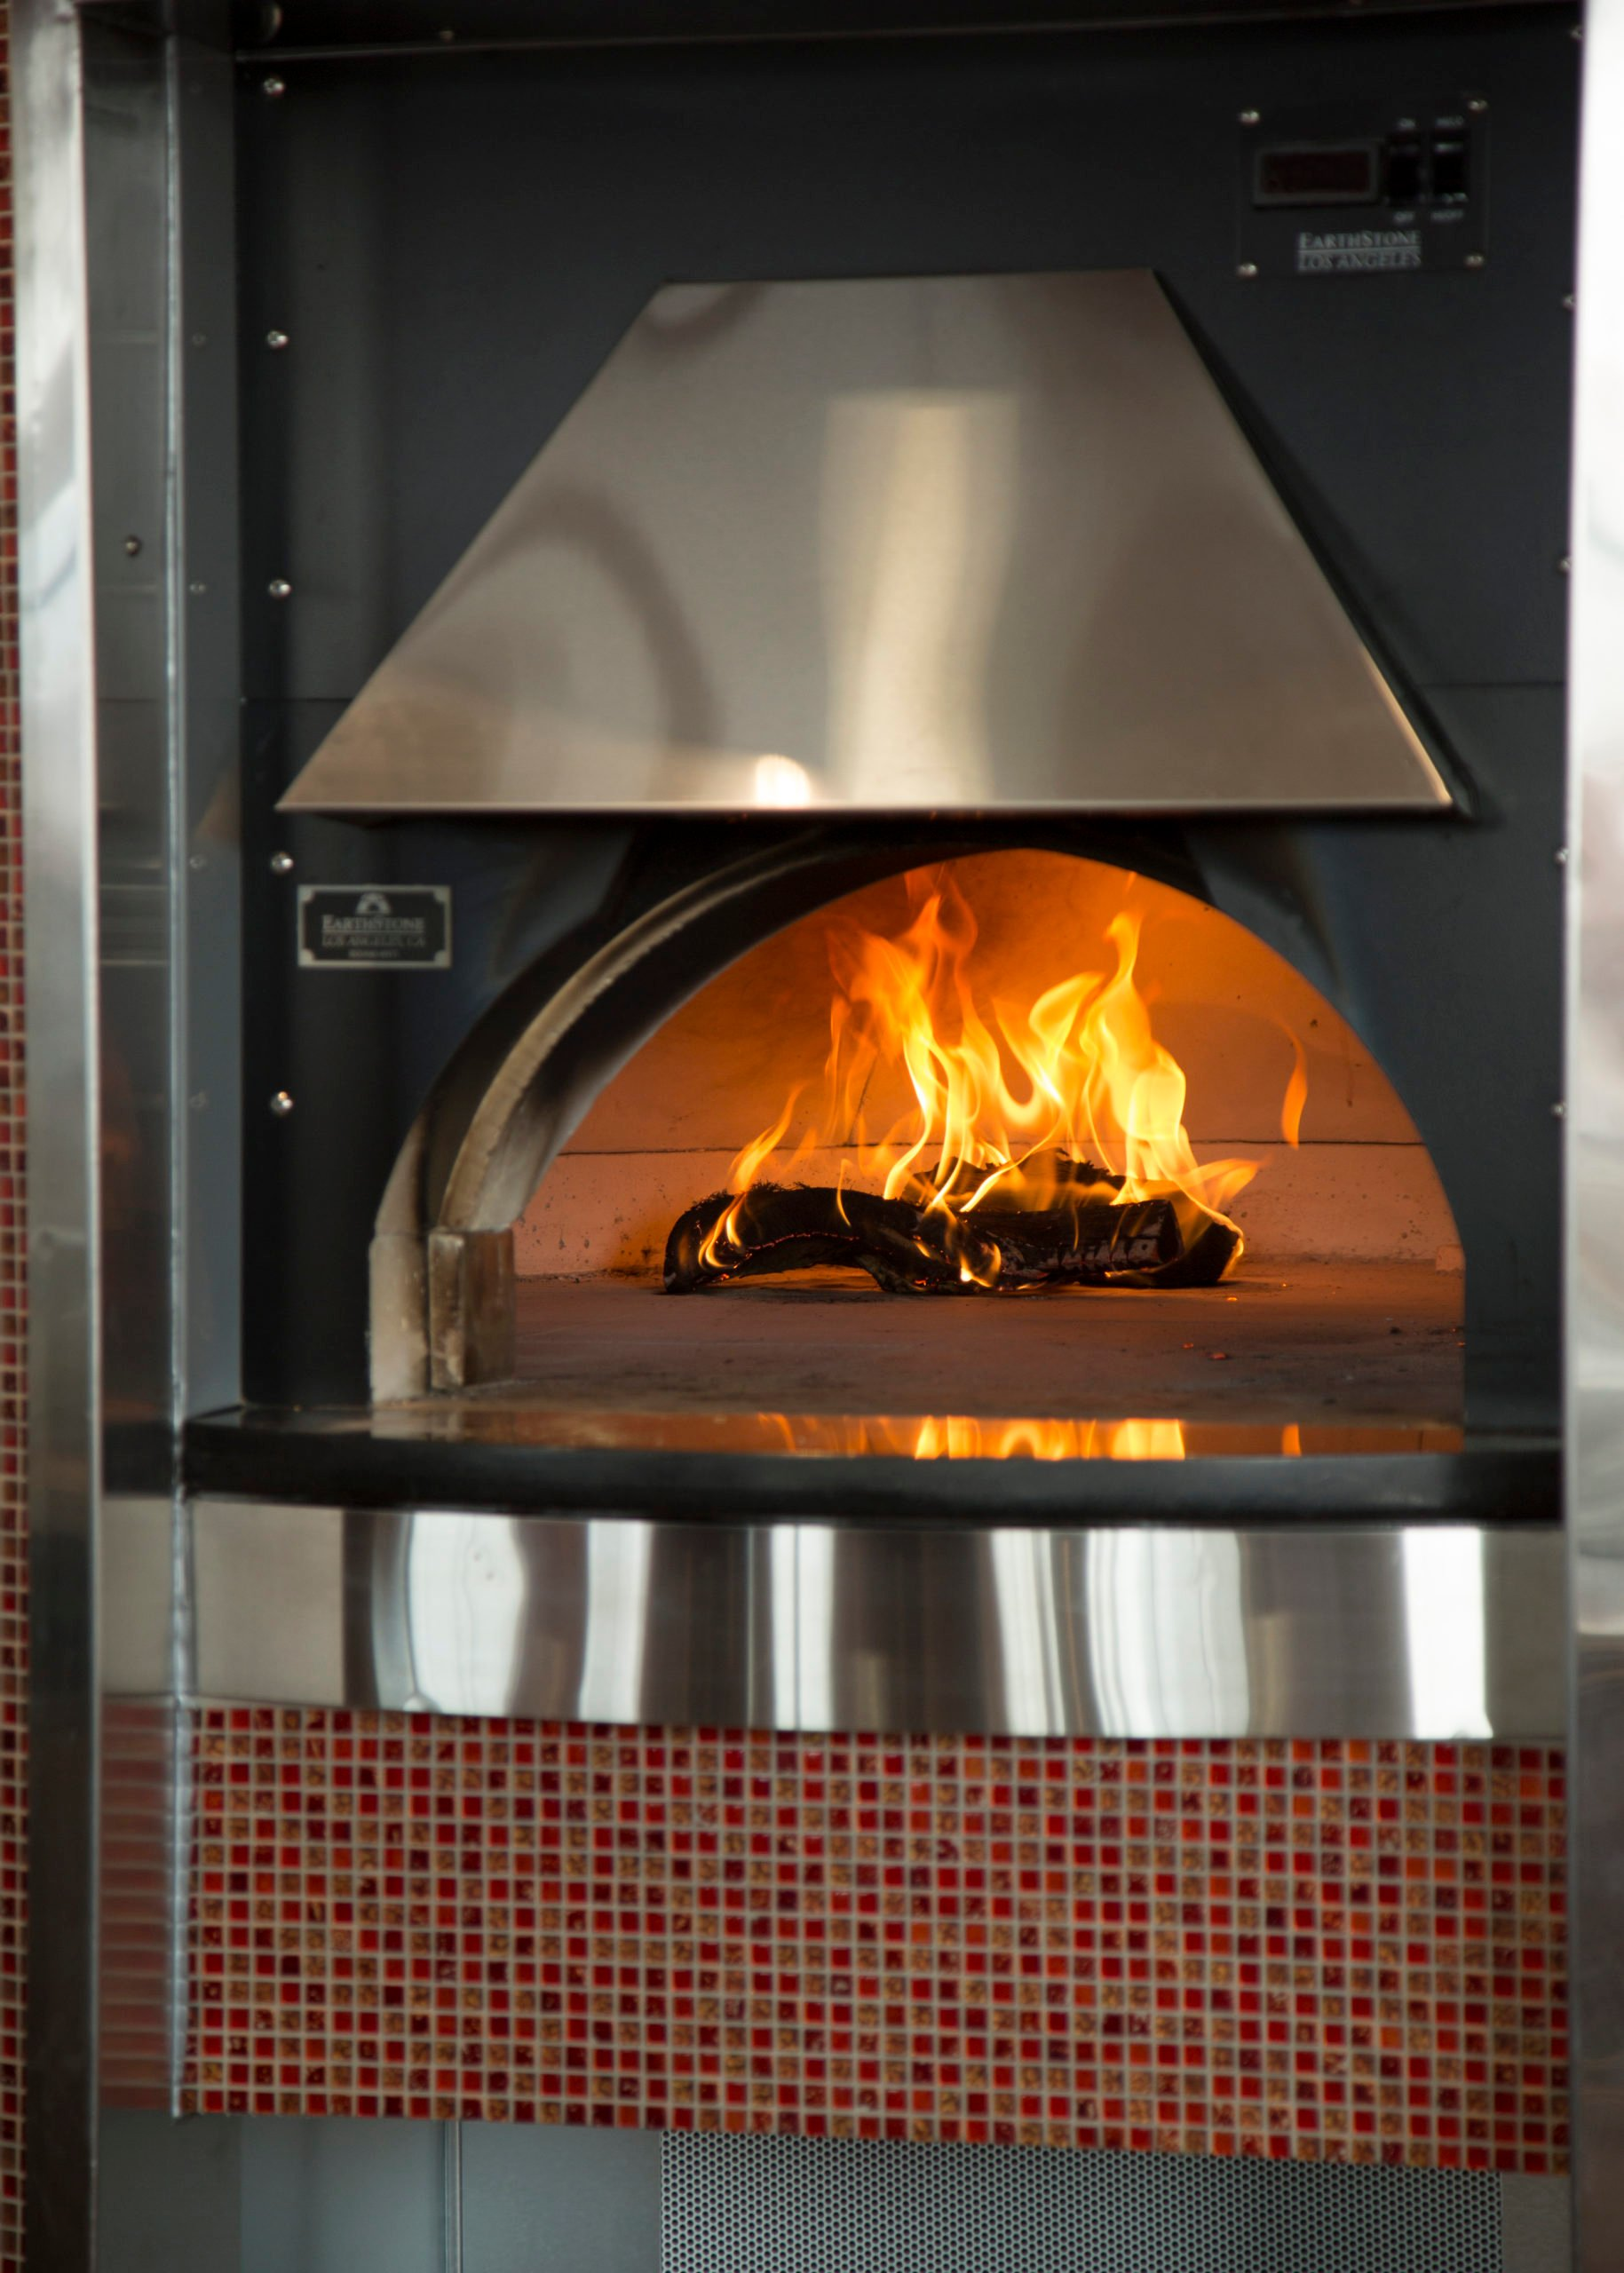 Five Benefits of a Wood-Fired Pizza Oven